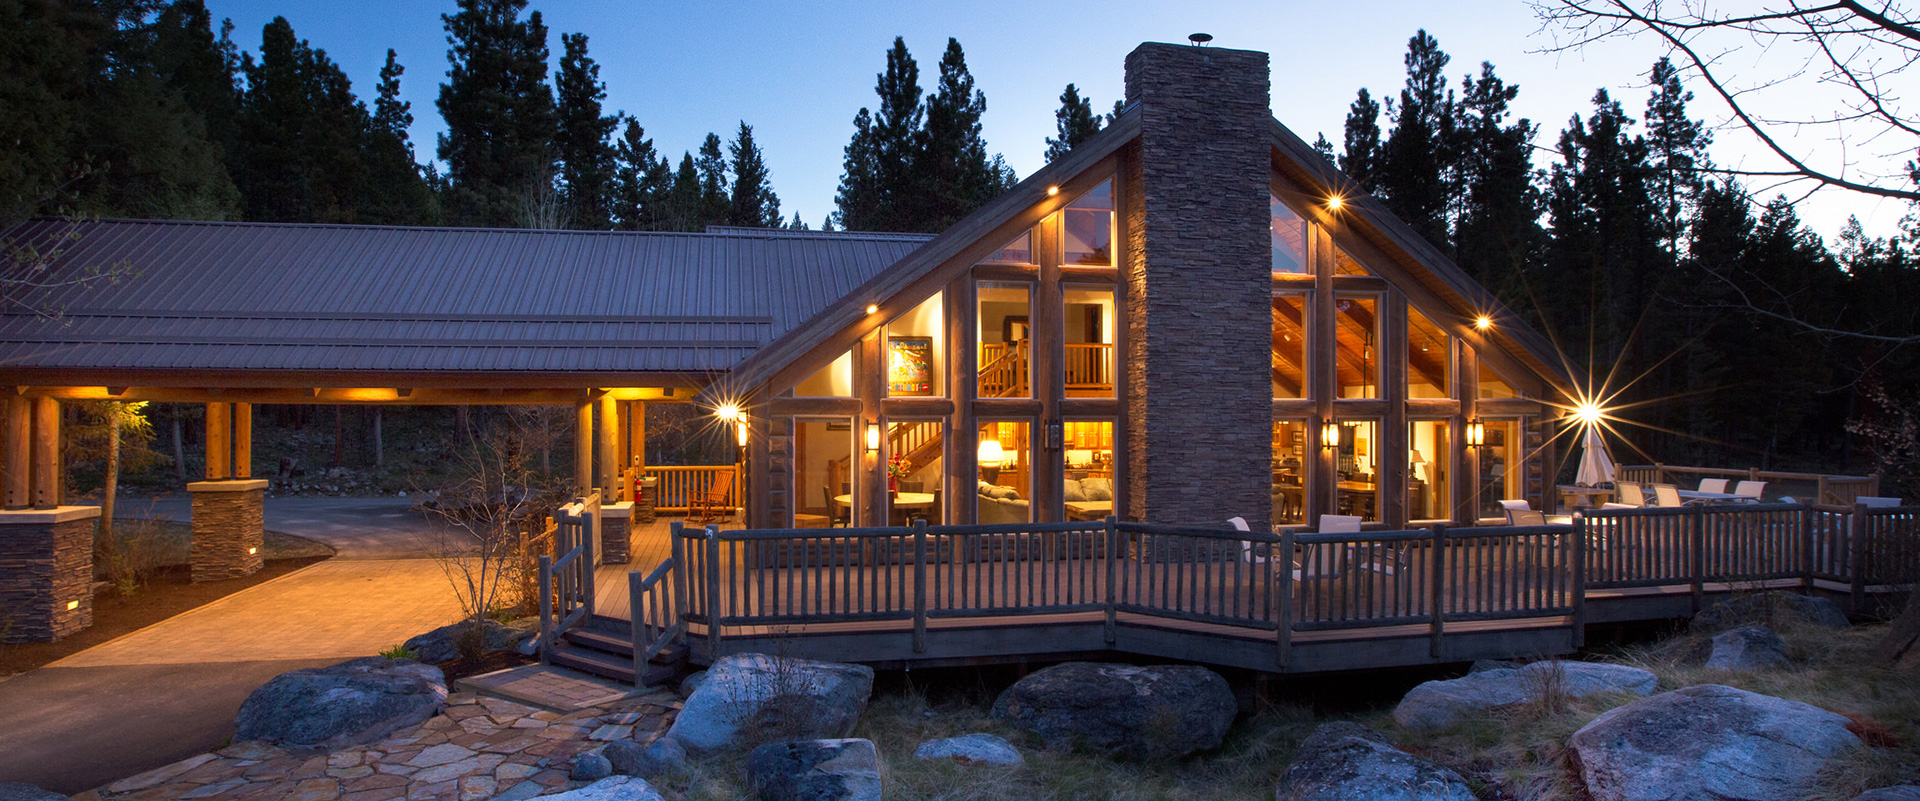 Triple creek ranch hotel montana